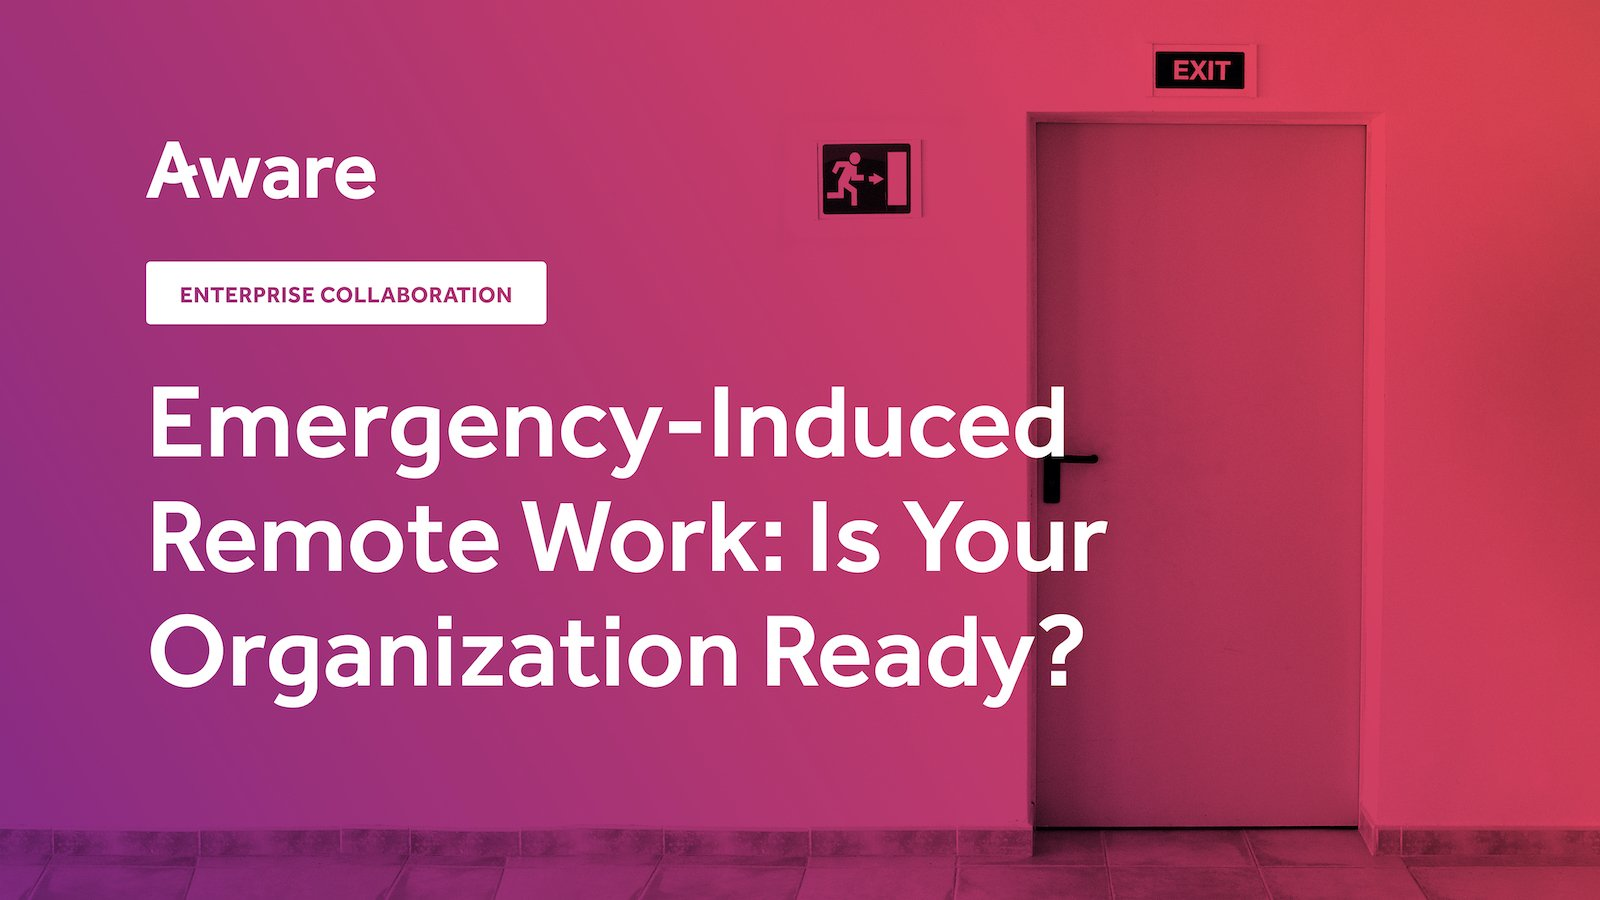 Emergency-Induced Remote Work: Is Your Organization Ready?